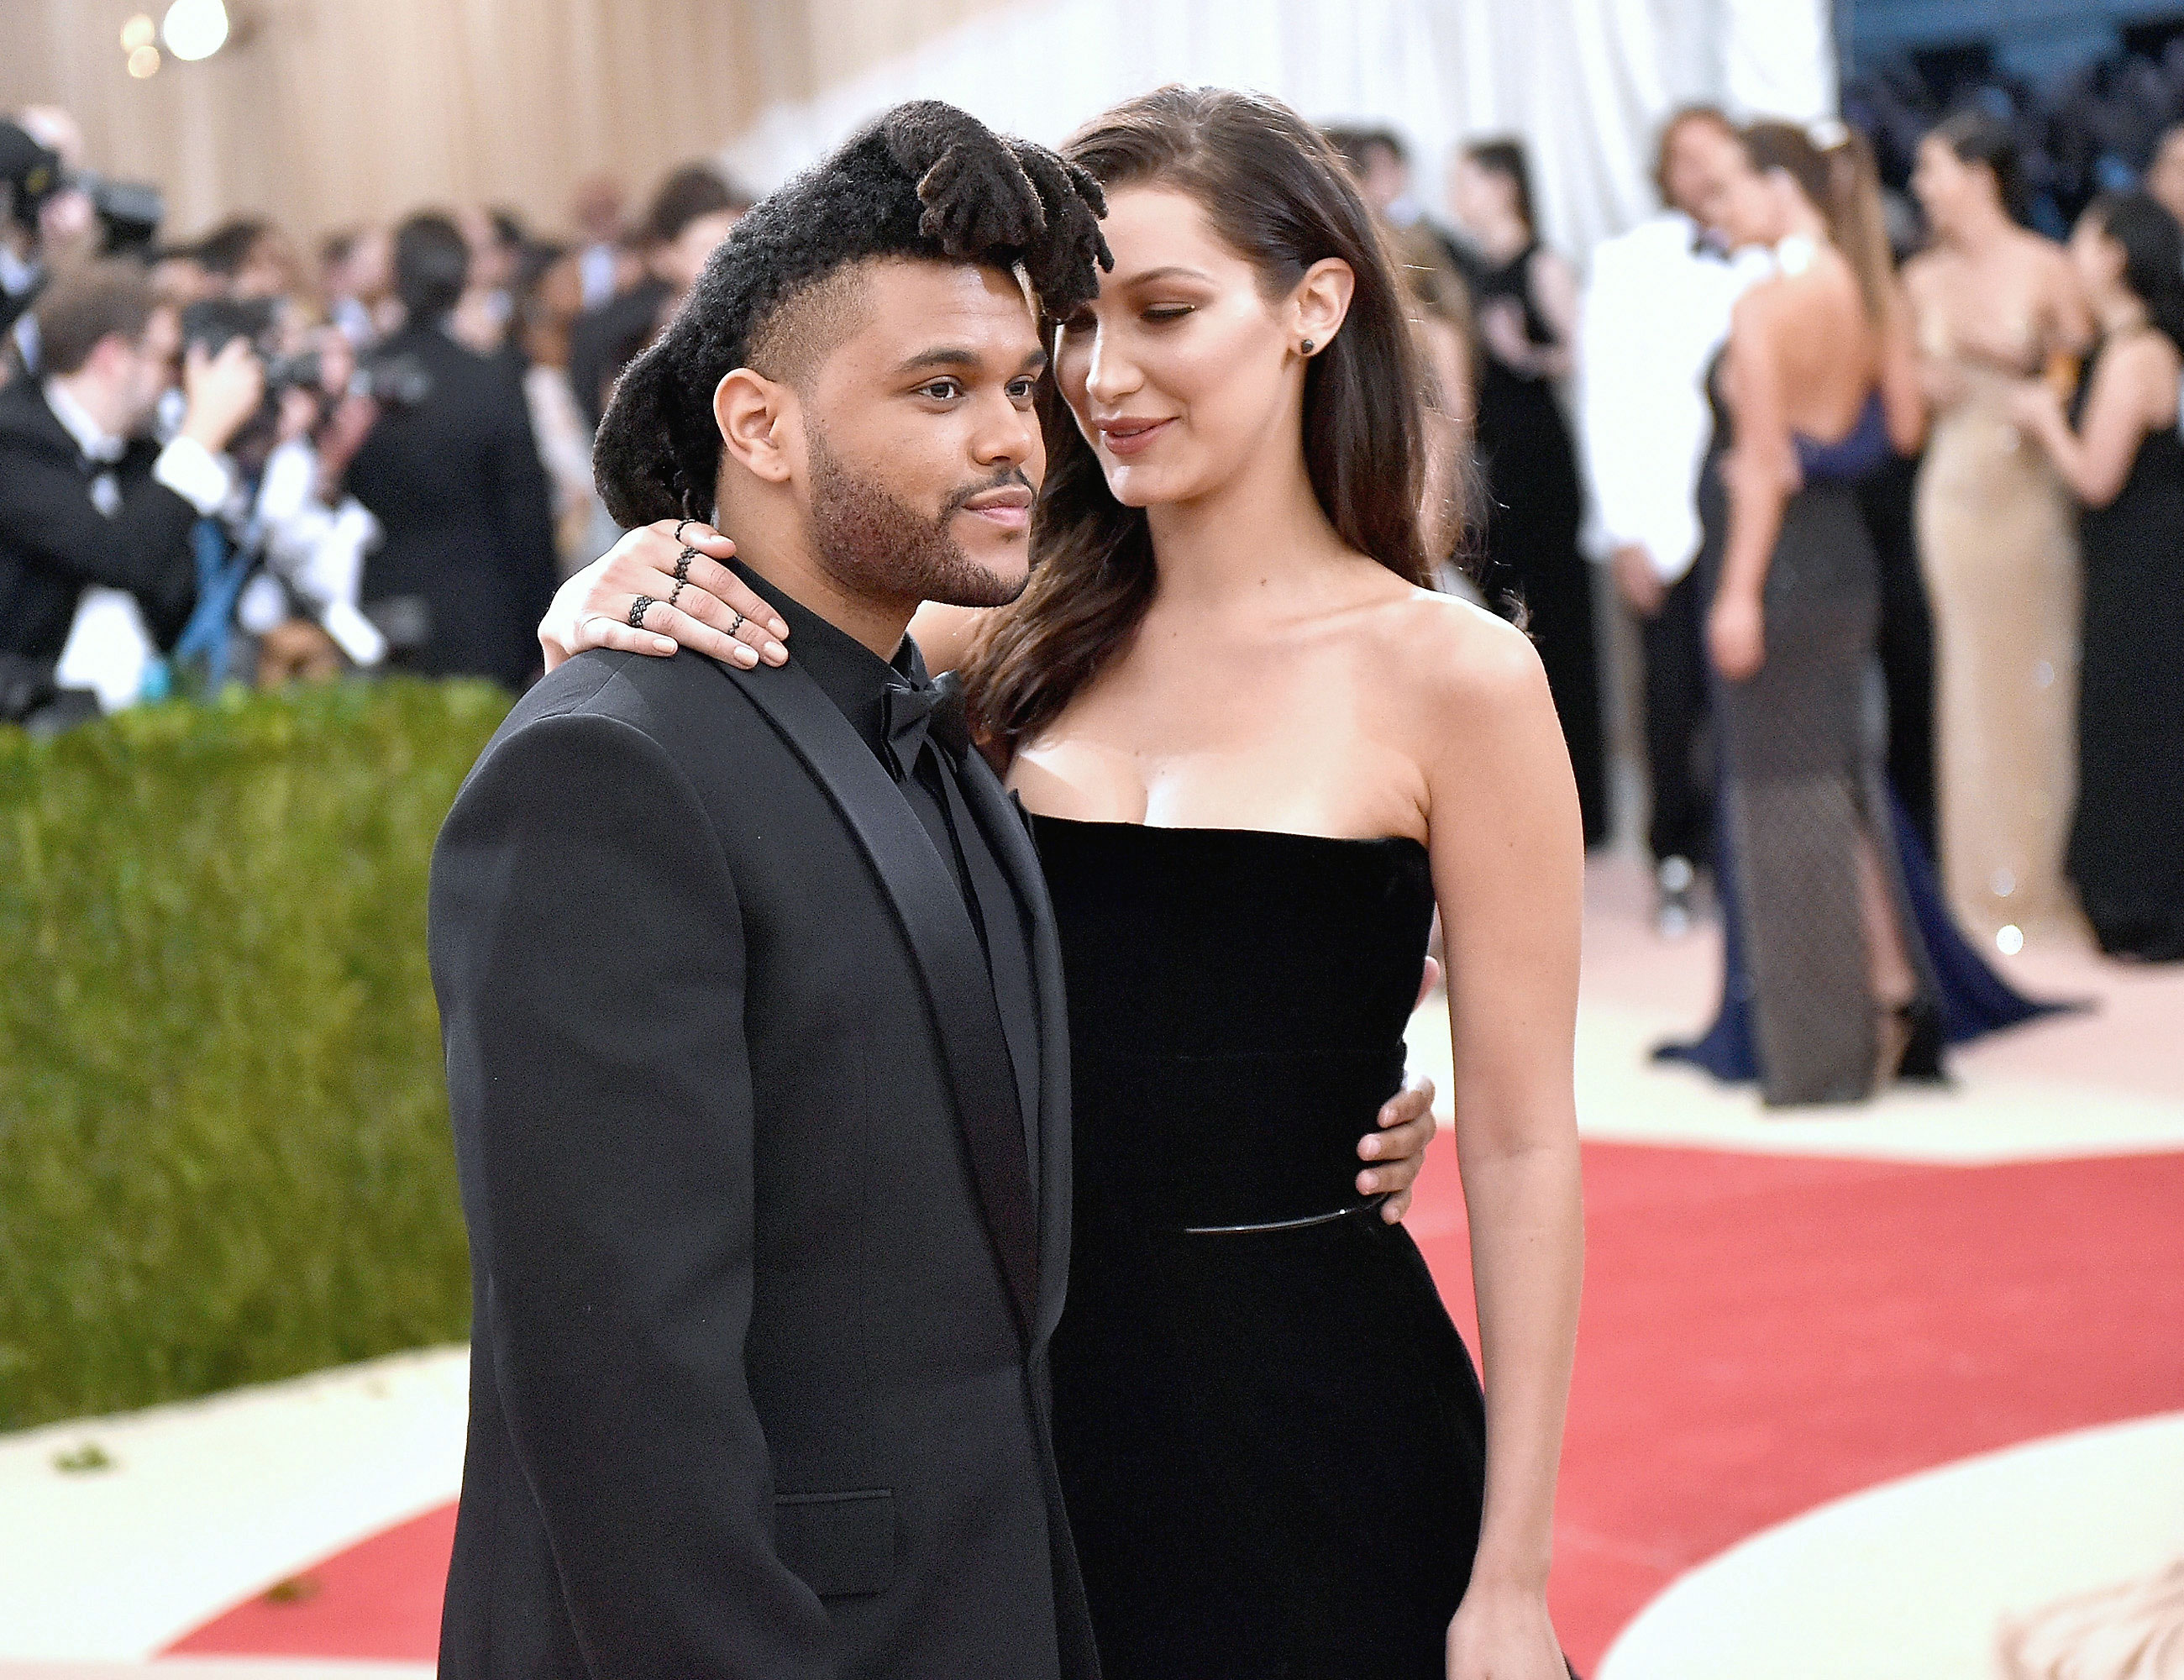 Bella Hadid and 'Daddy' The Weeknd Celebrate His 29th Birthday With Matching Camo Outfits - Bella Hadid, The Weeknd